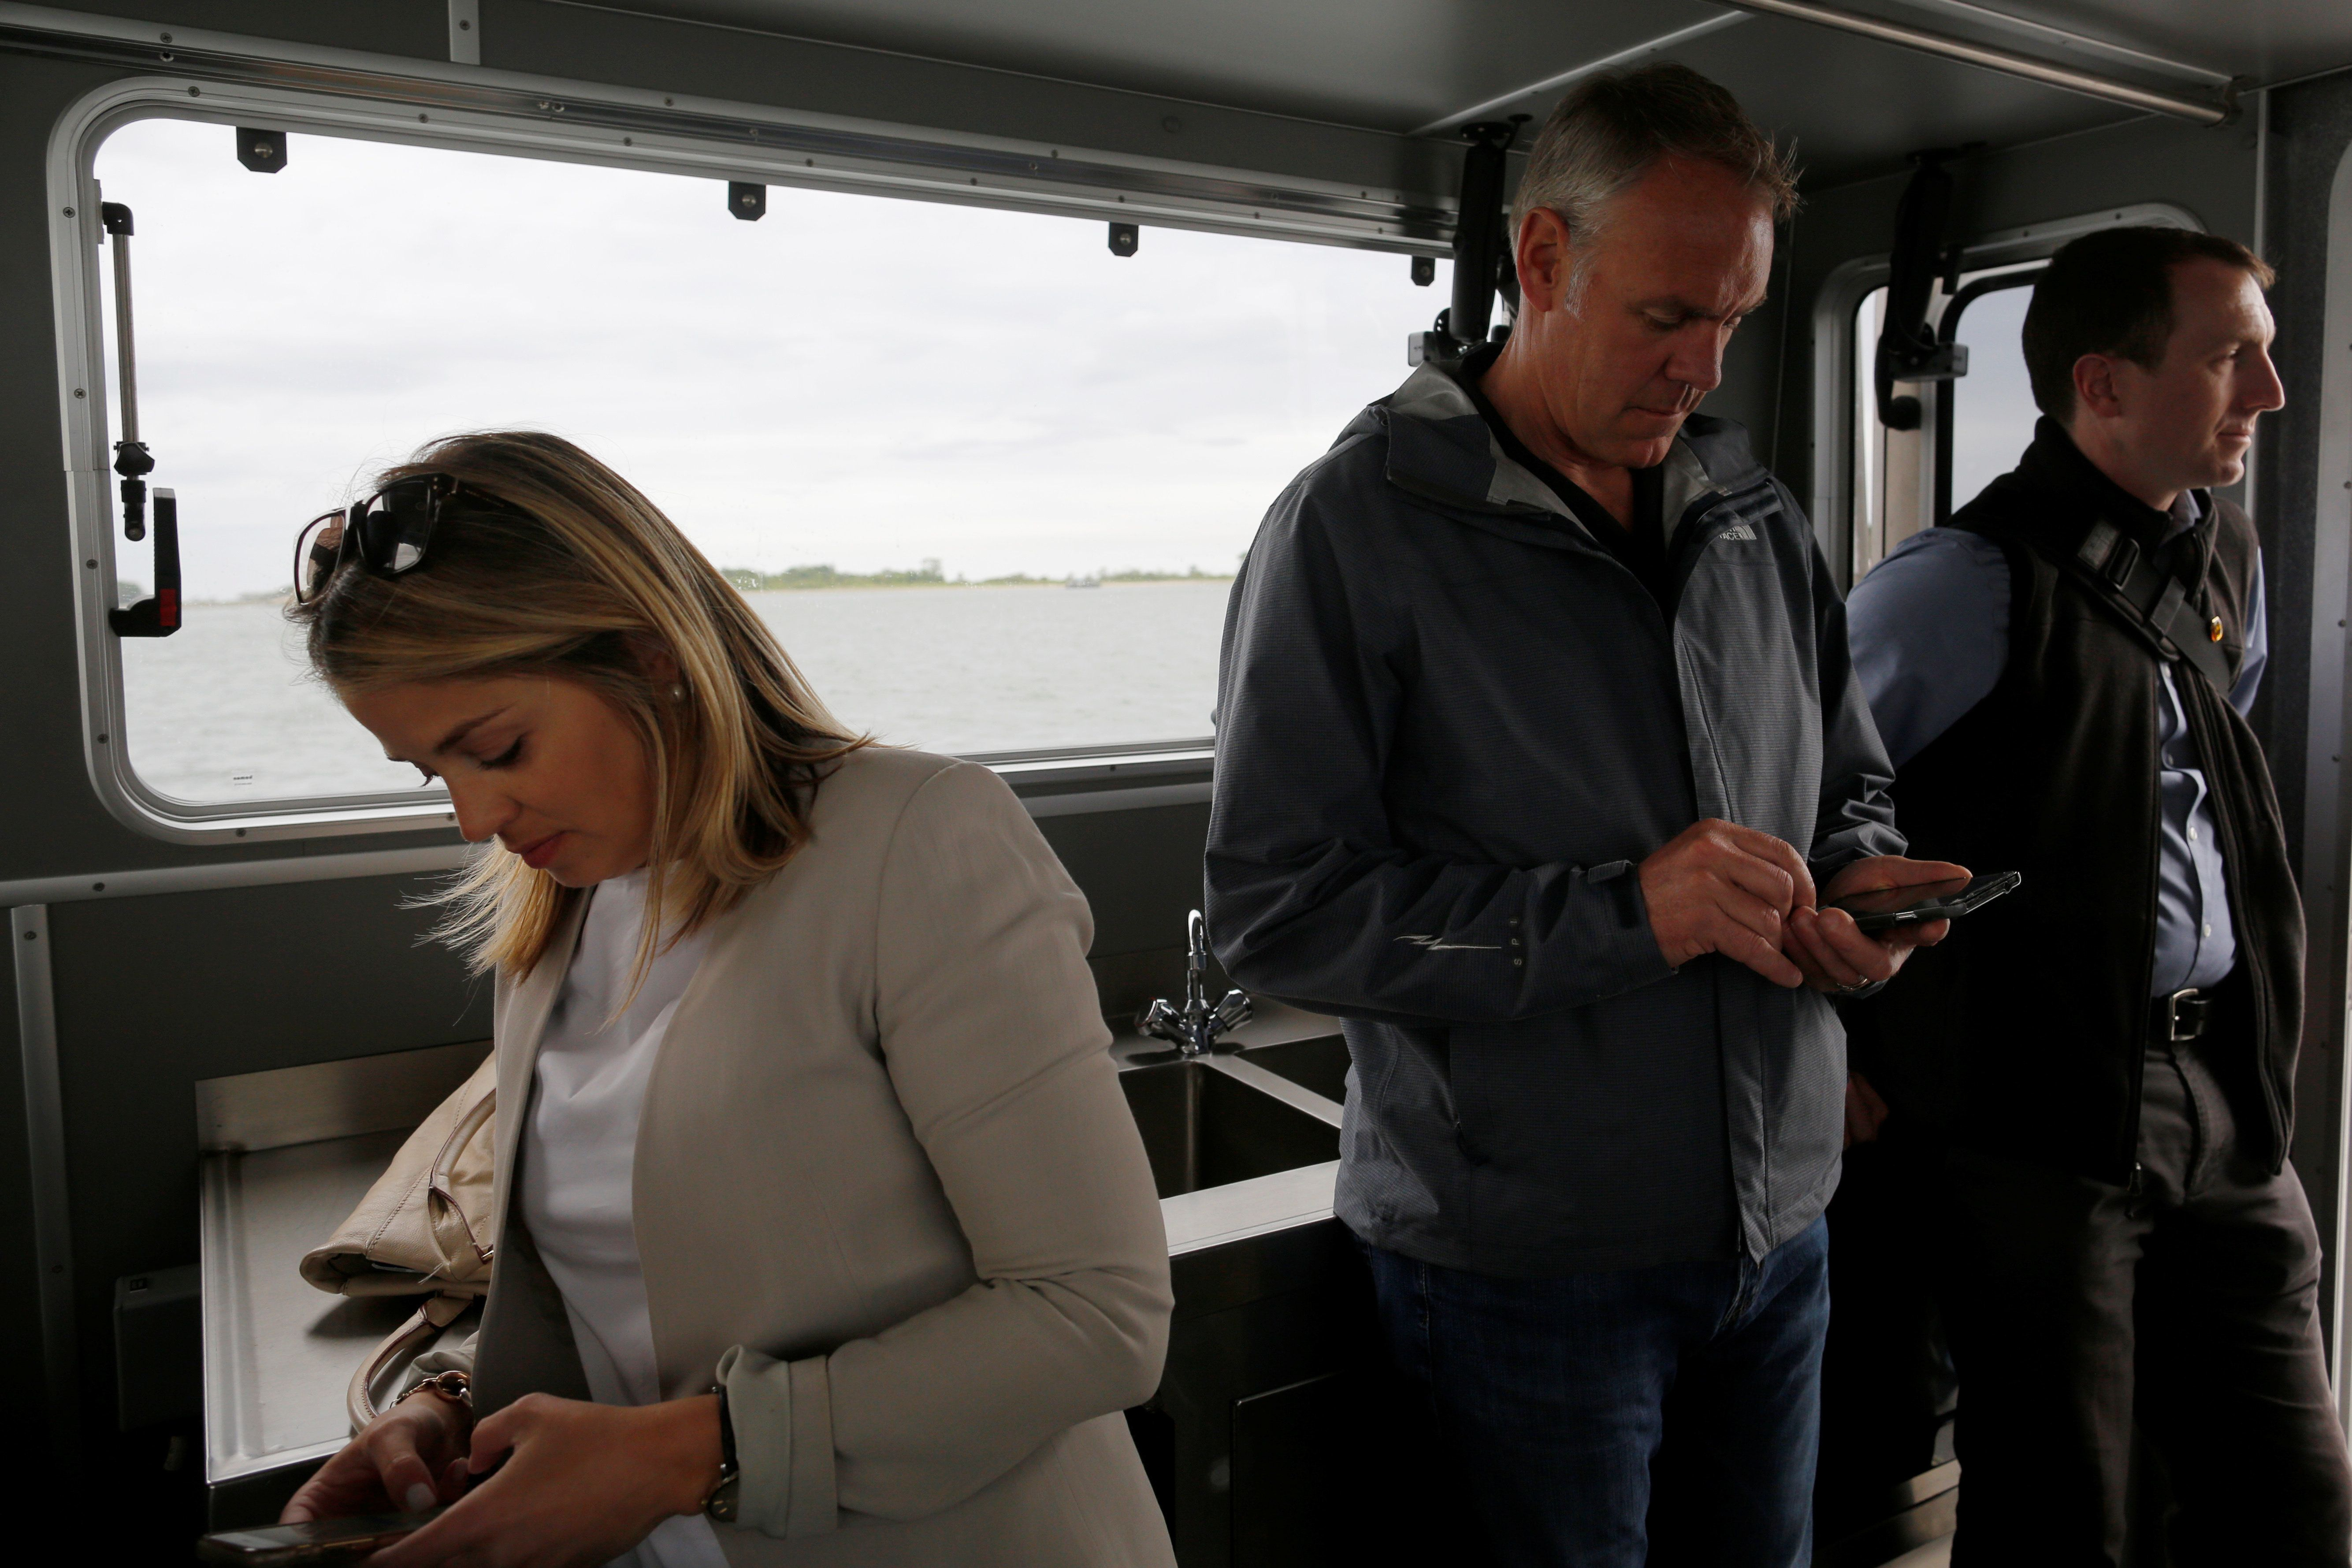 U.S. Interior Secretary Ryan Zinke (C) checks his mobile phone after a visit to Georges Island, part of his National Monuments review process, in Boston Harbor, Massachusetts, U.S., June 16, 2017.  Picture taken June 16, 2017.   REUTERS/Brian Snyder